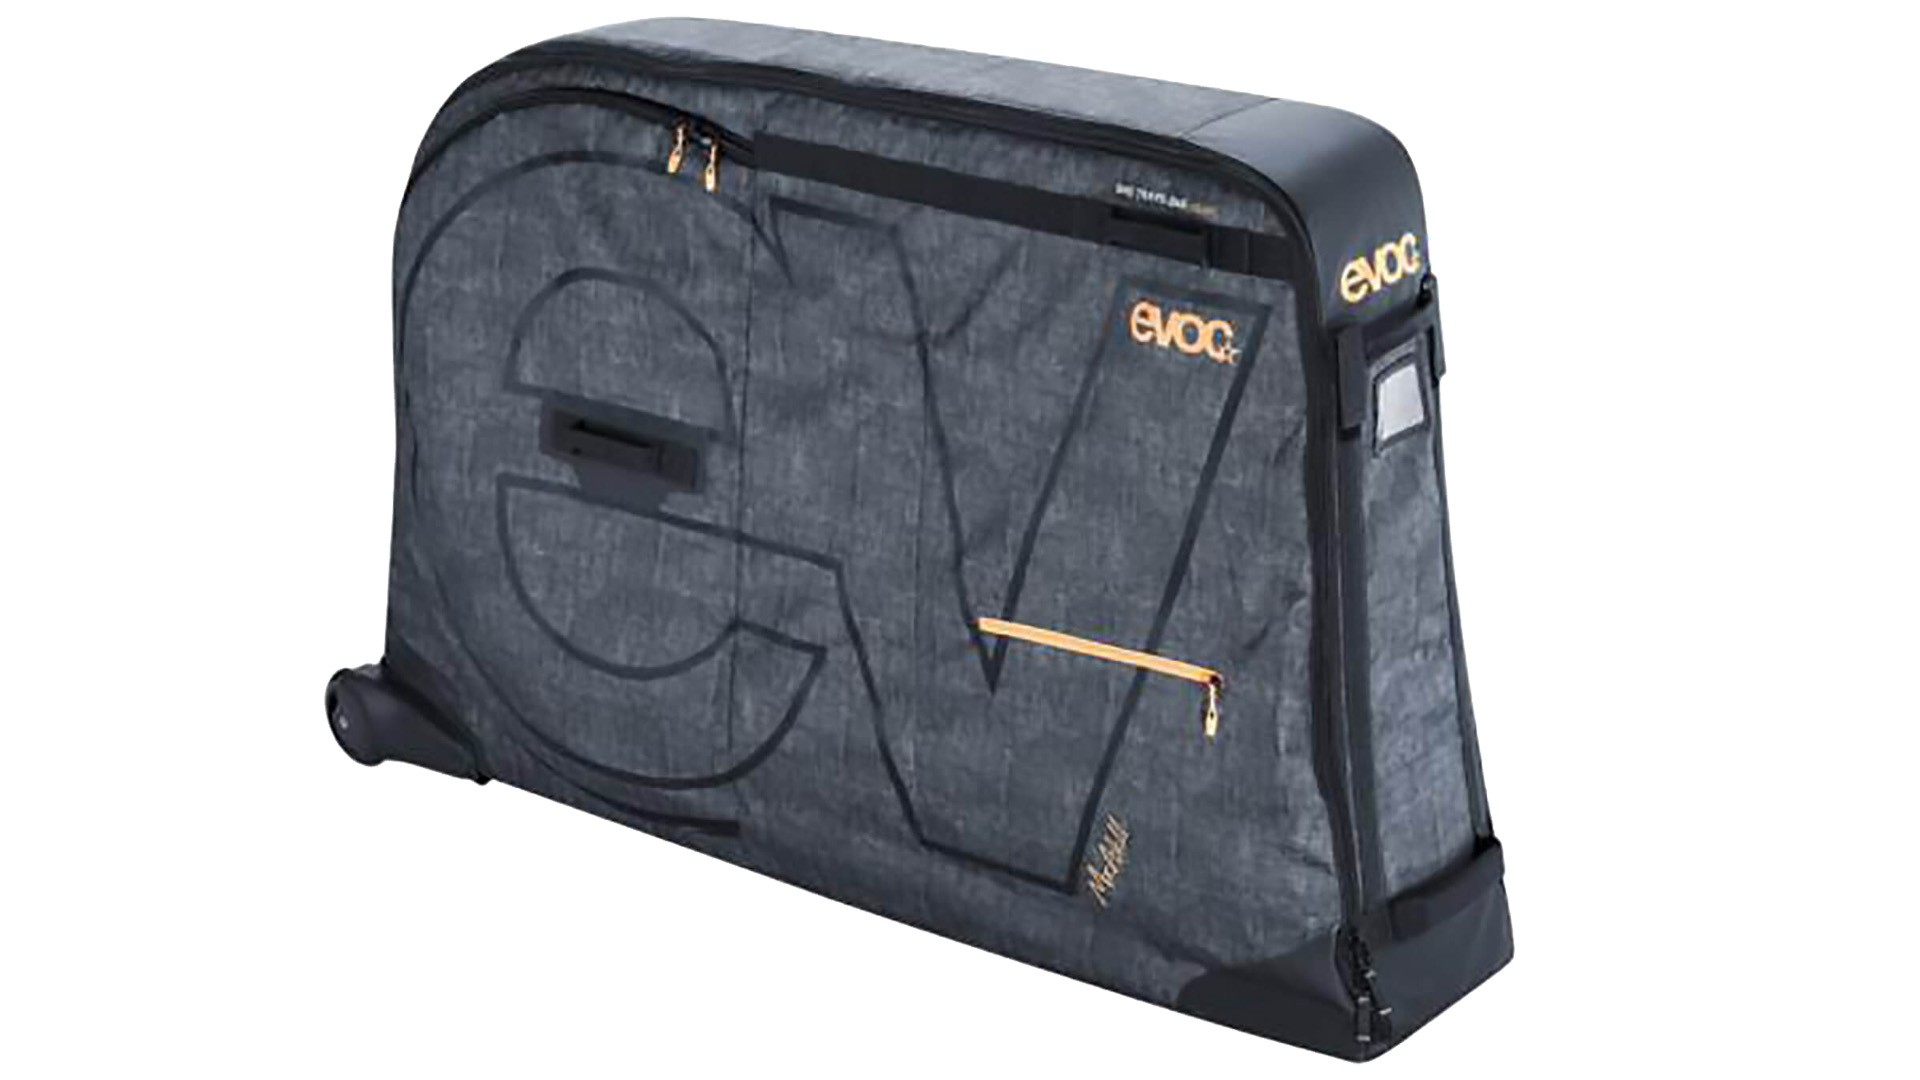 For the travelling mountain biker, an Evoc bikebag is a practical gift that also happens to look pretty cool too